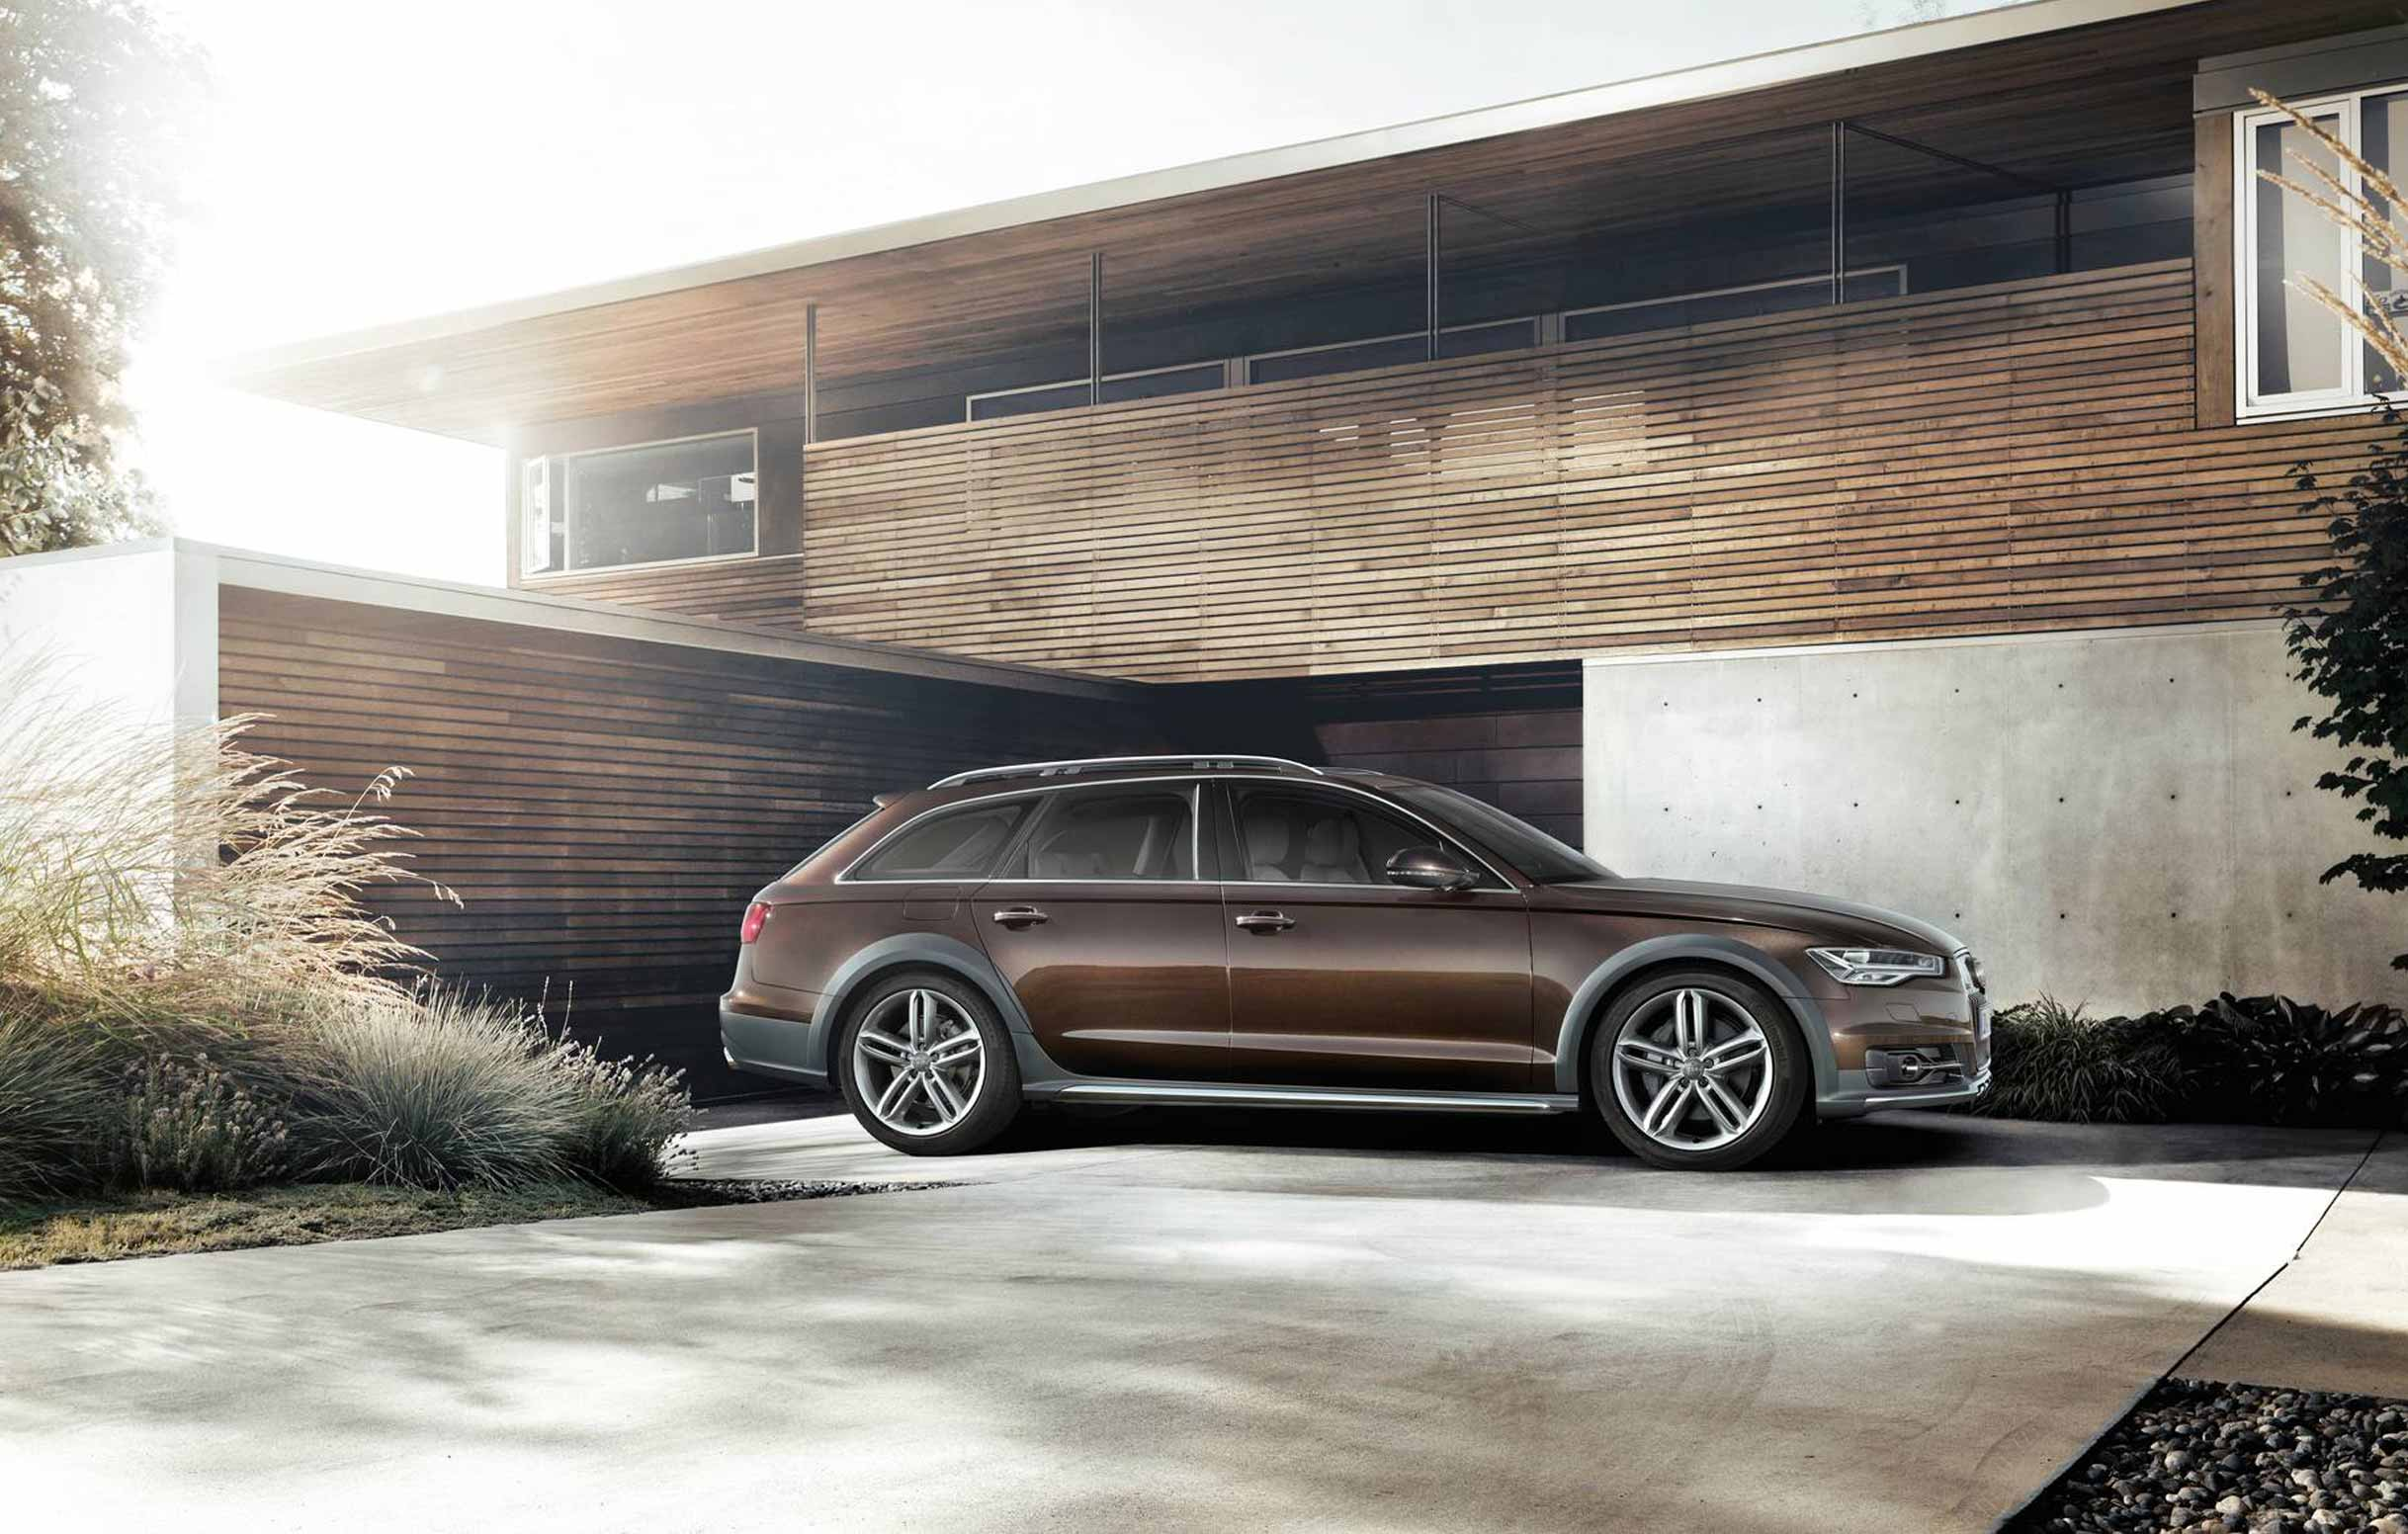 2436x1552_A6_allroad_quattro_Lifestyle_Side.jpg